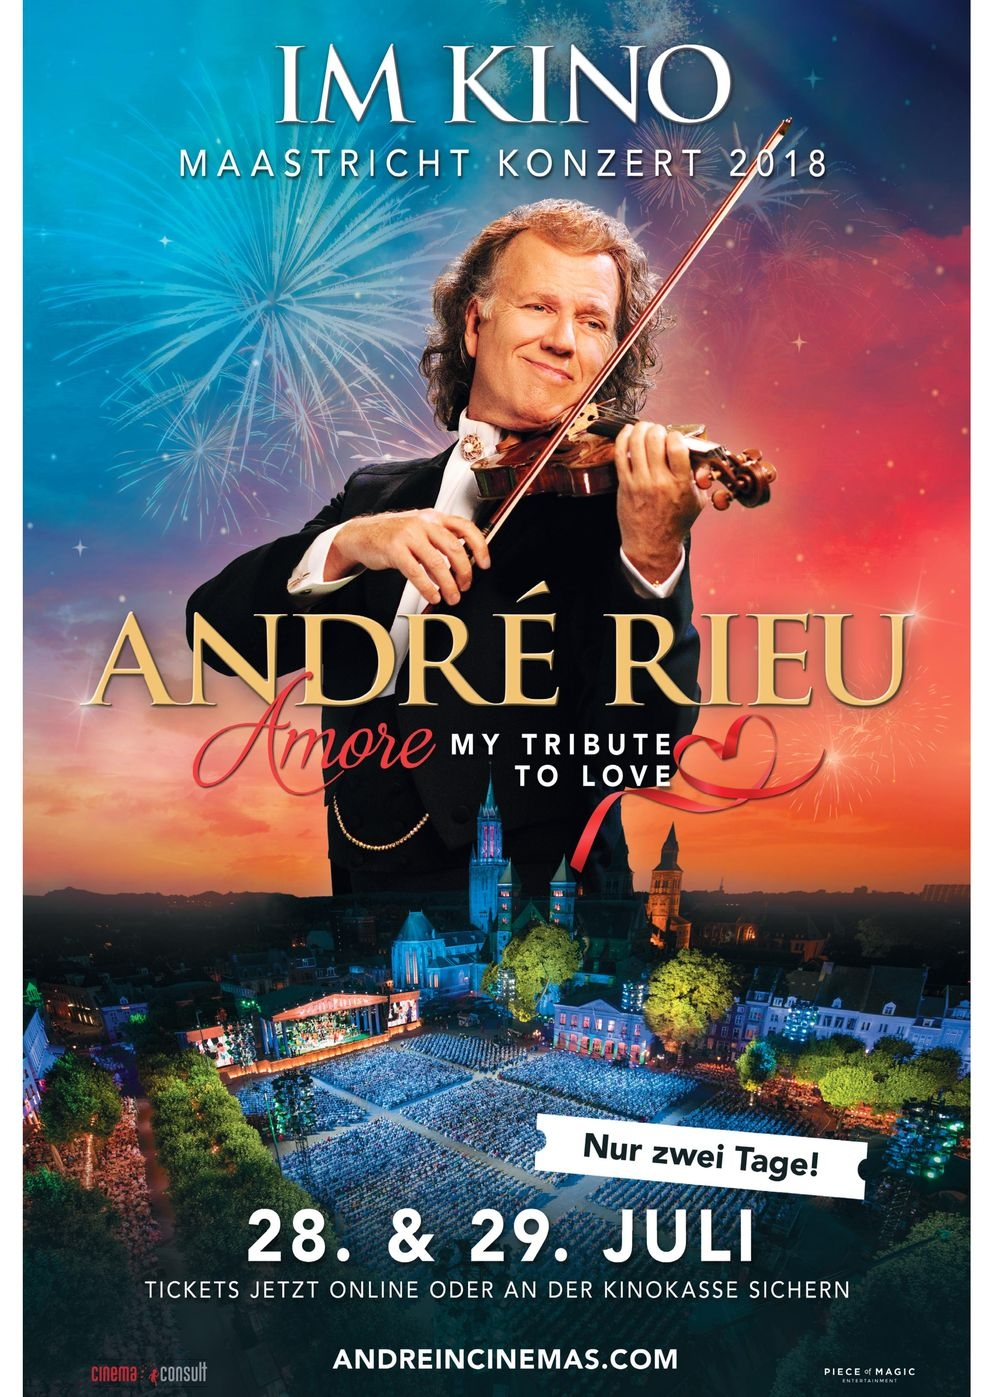 André Rieu - Maastricht-Konzert 2018: Amore - My Tribute to Love (Poster)